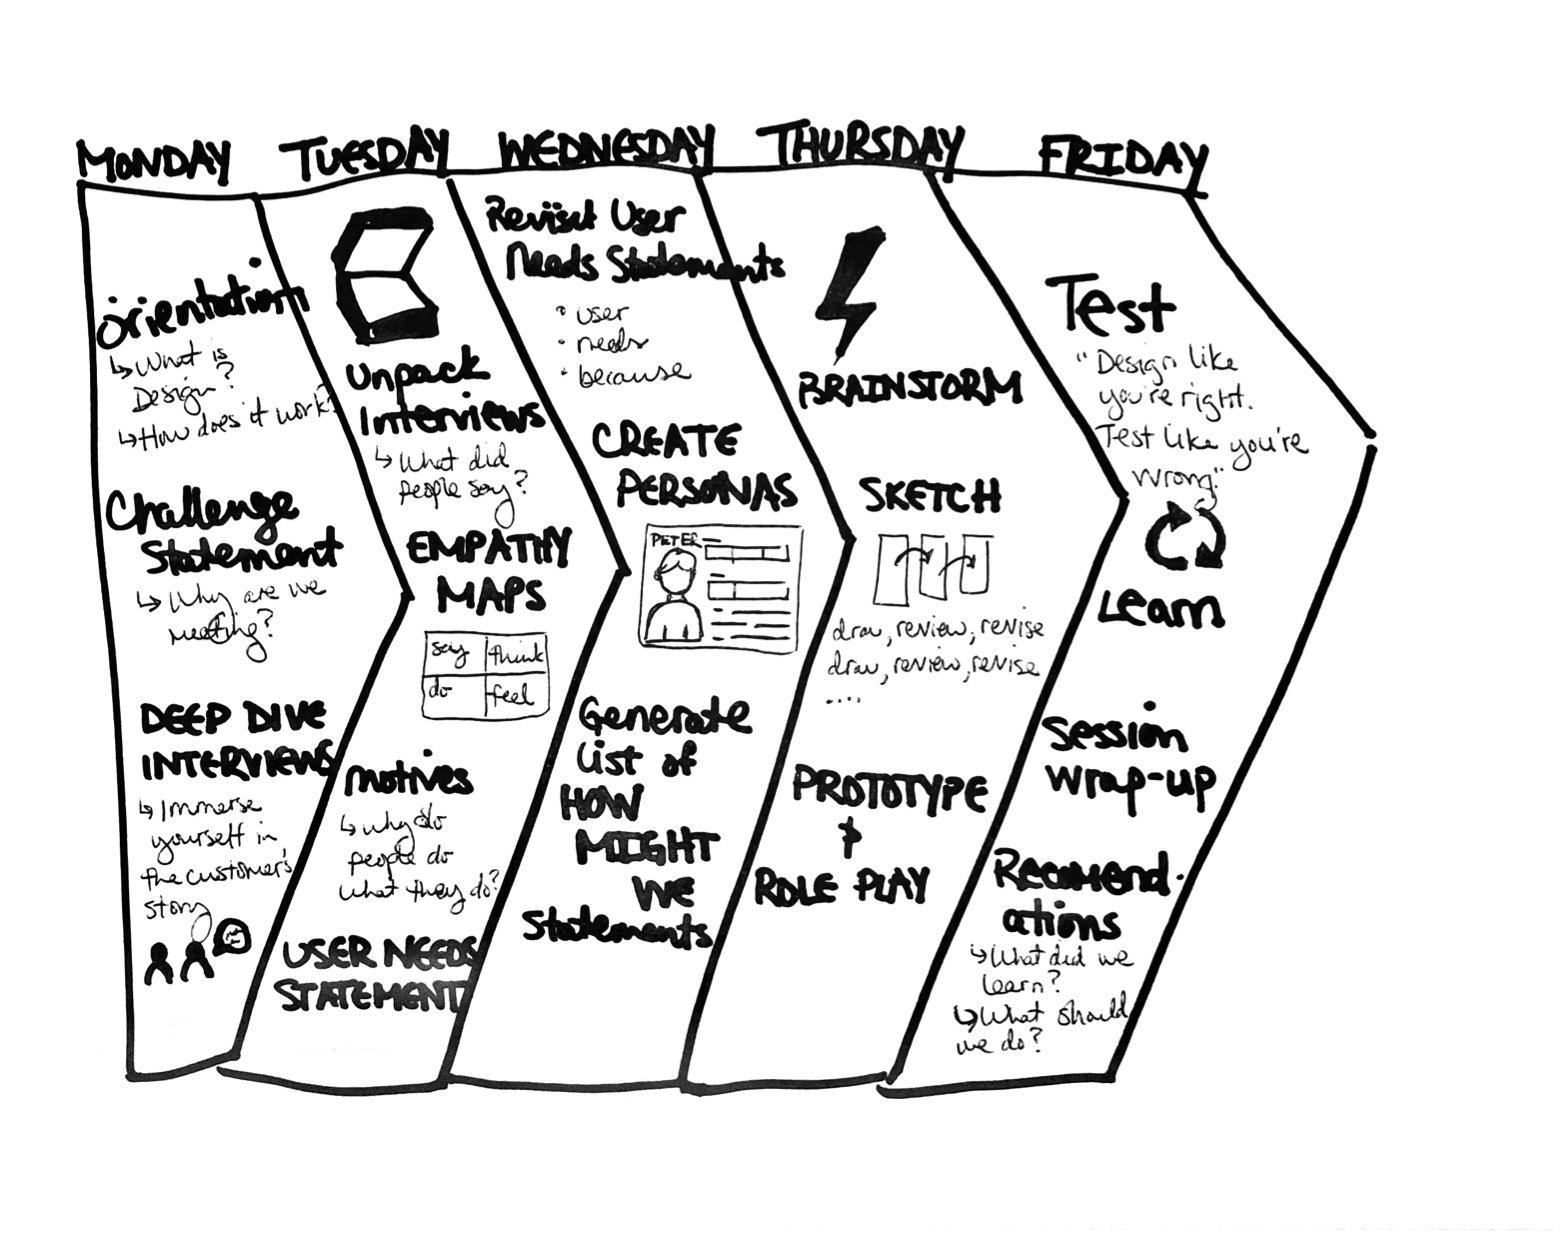 Design Thinking - Design Sprint - A Design Sprint is a 5-day event that uses Design Thinkinging to creatively solve complex problems.